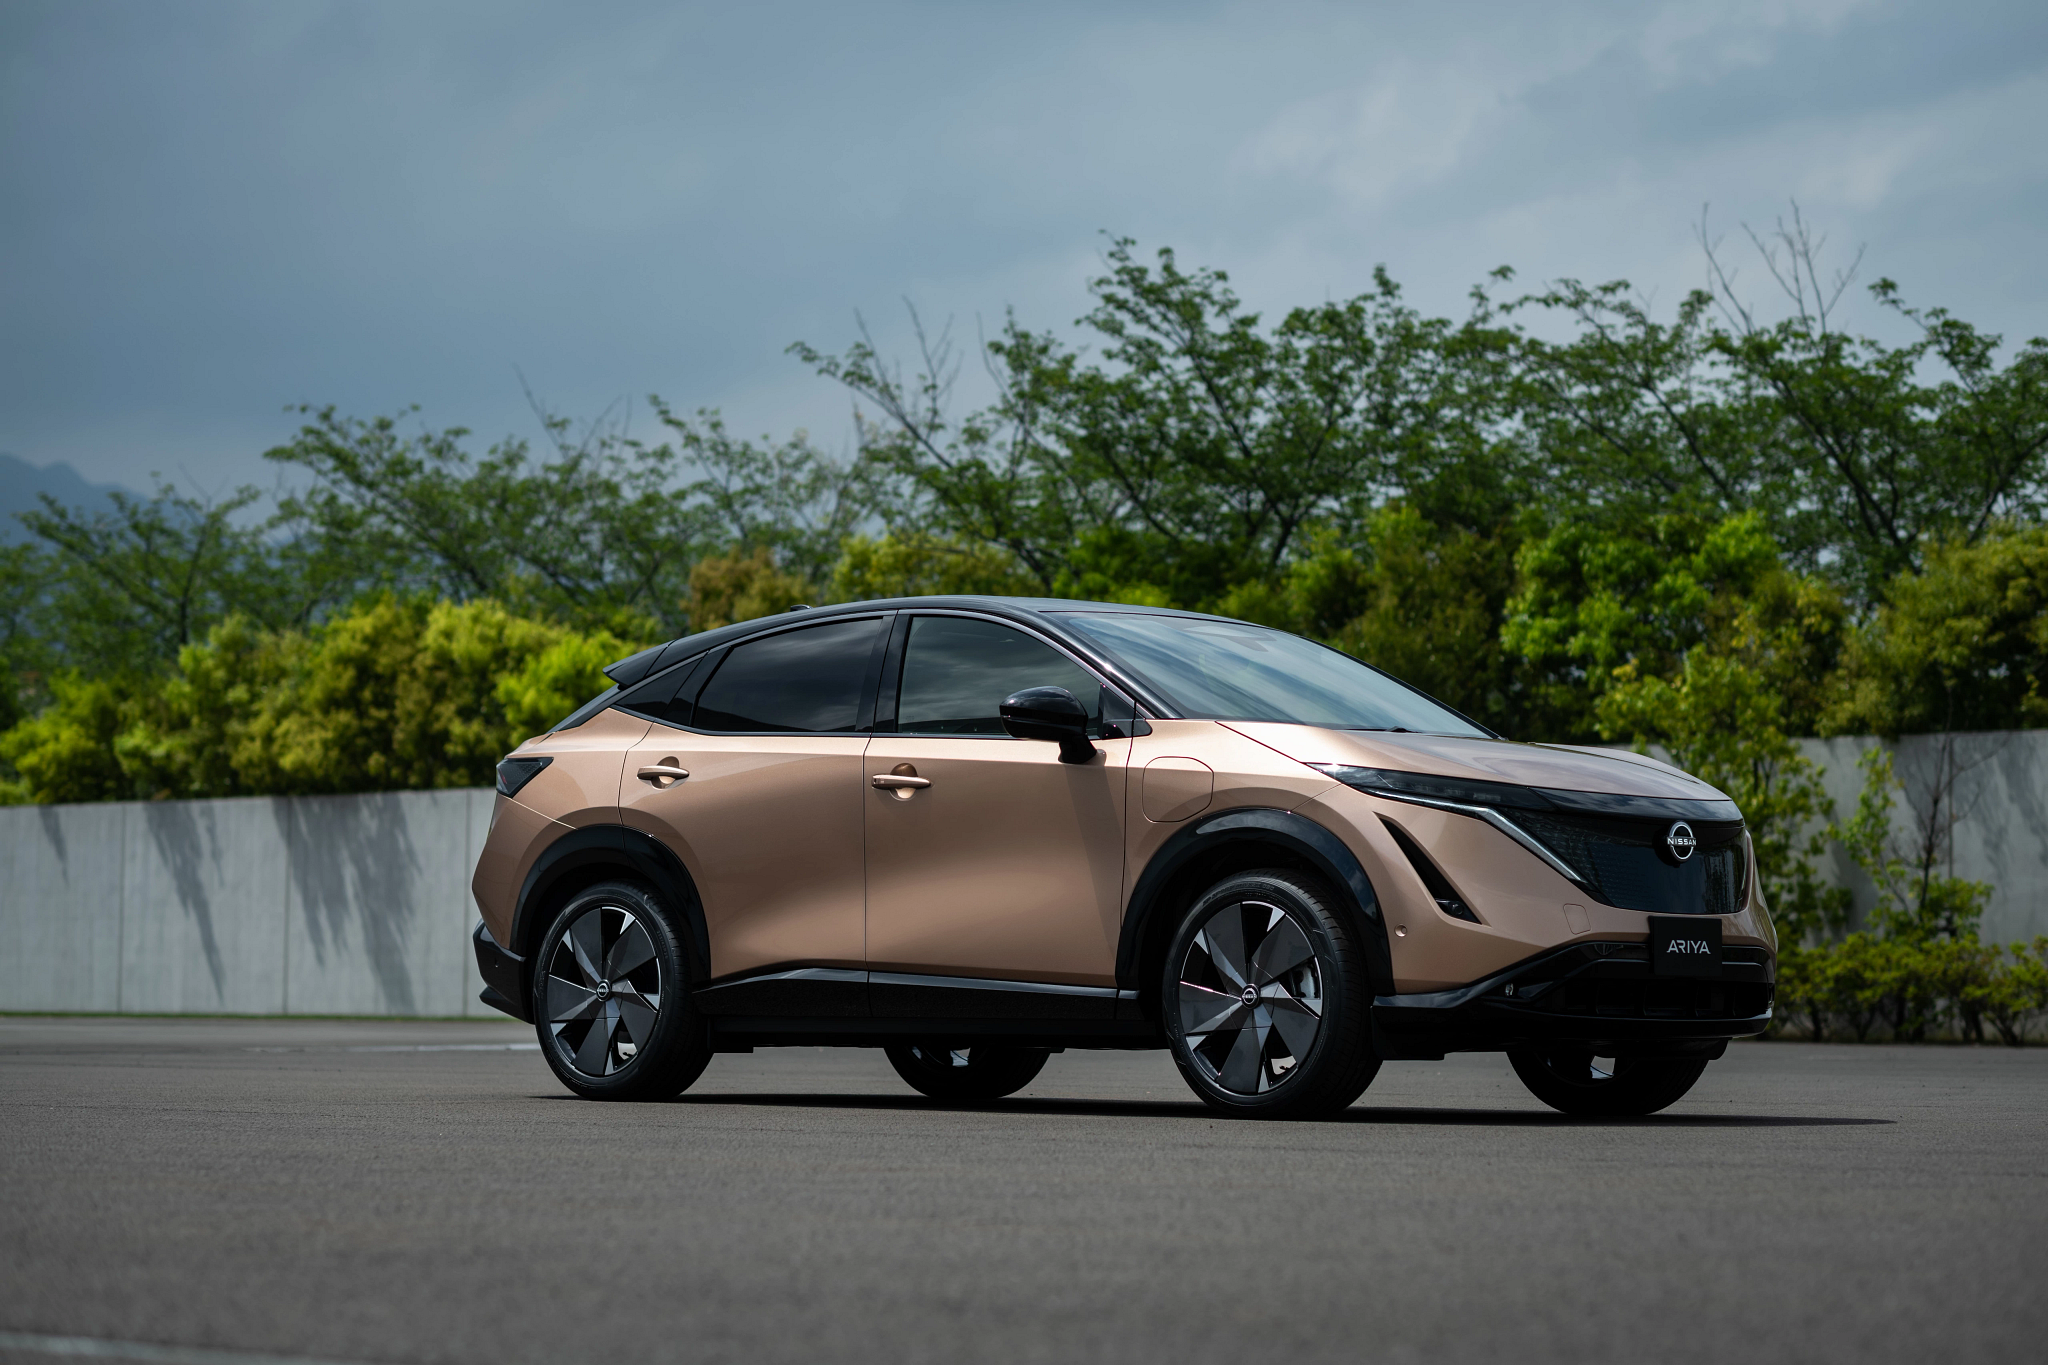 Nissan Ariya: All-New, All-Electric SUV to Join Mileage-High Club